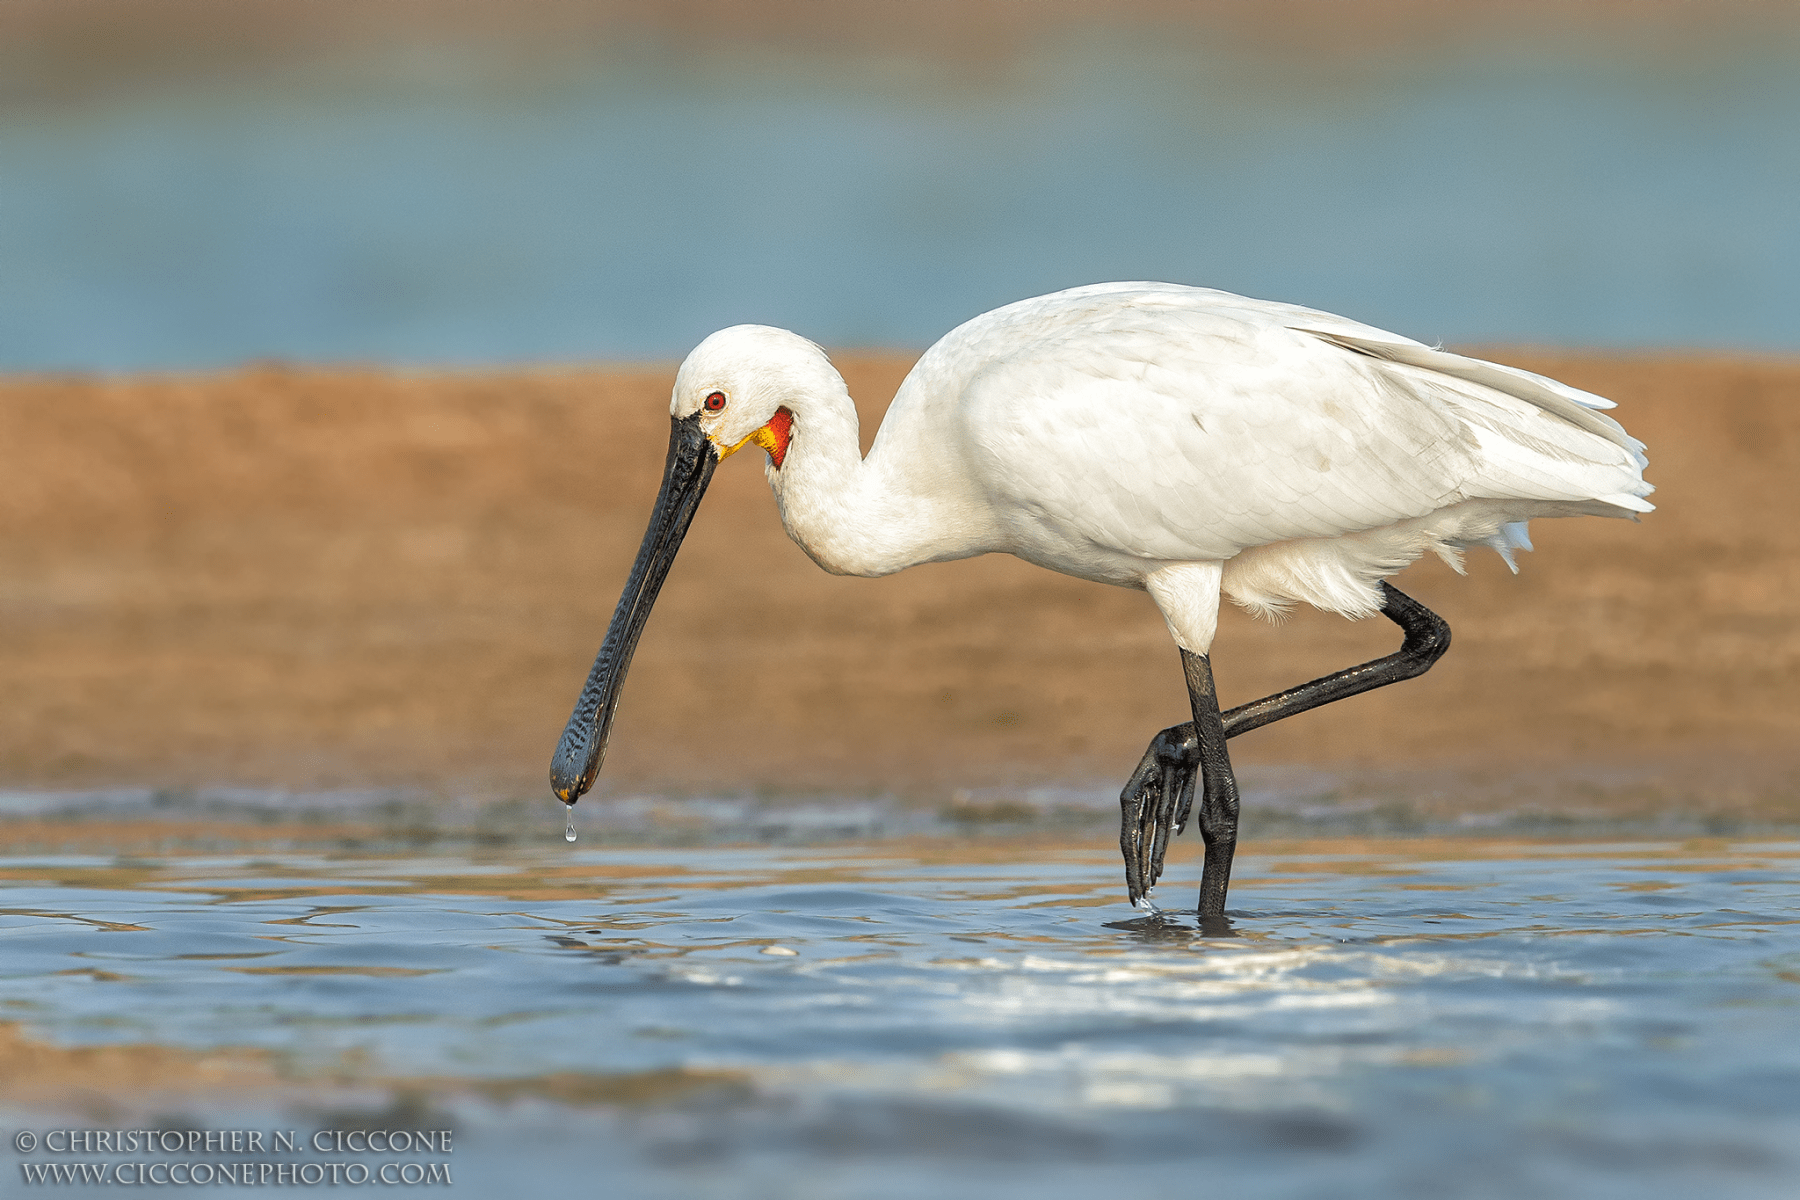 Eurasian Spoonbill By Christopher Ciccone